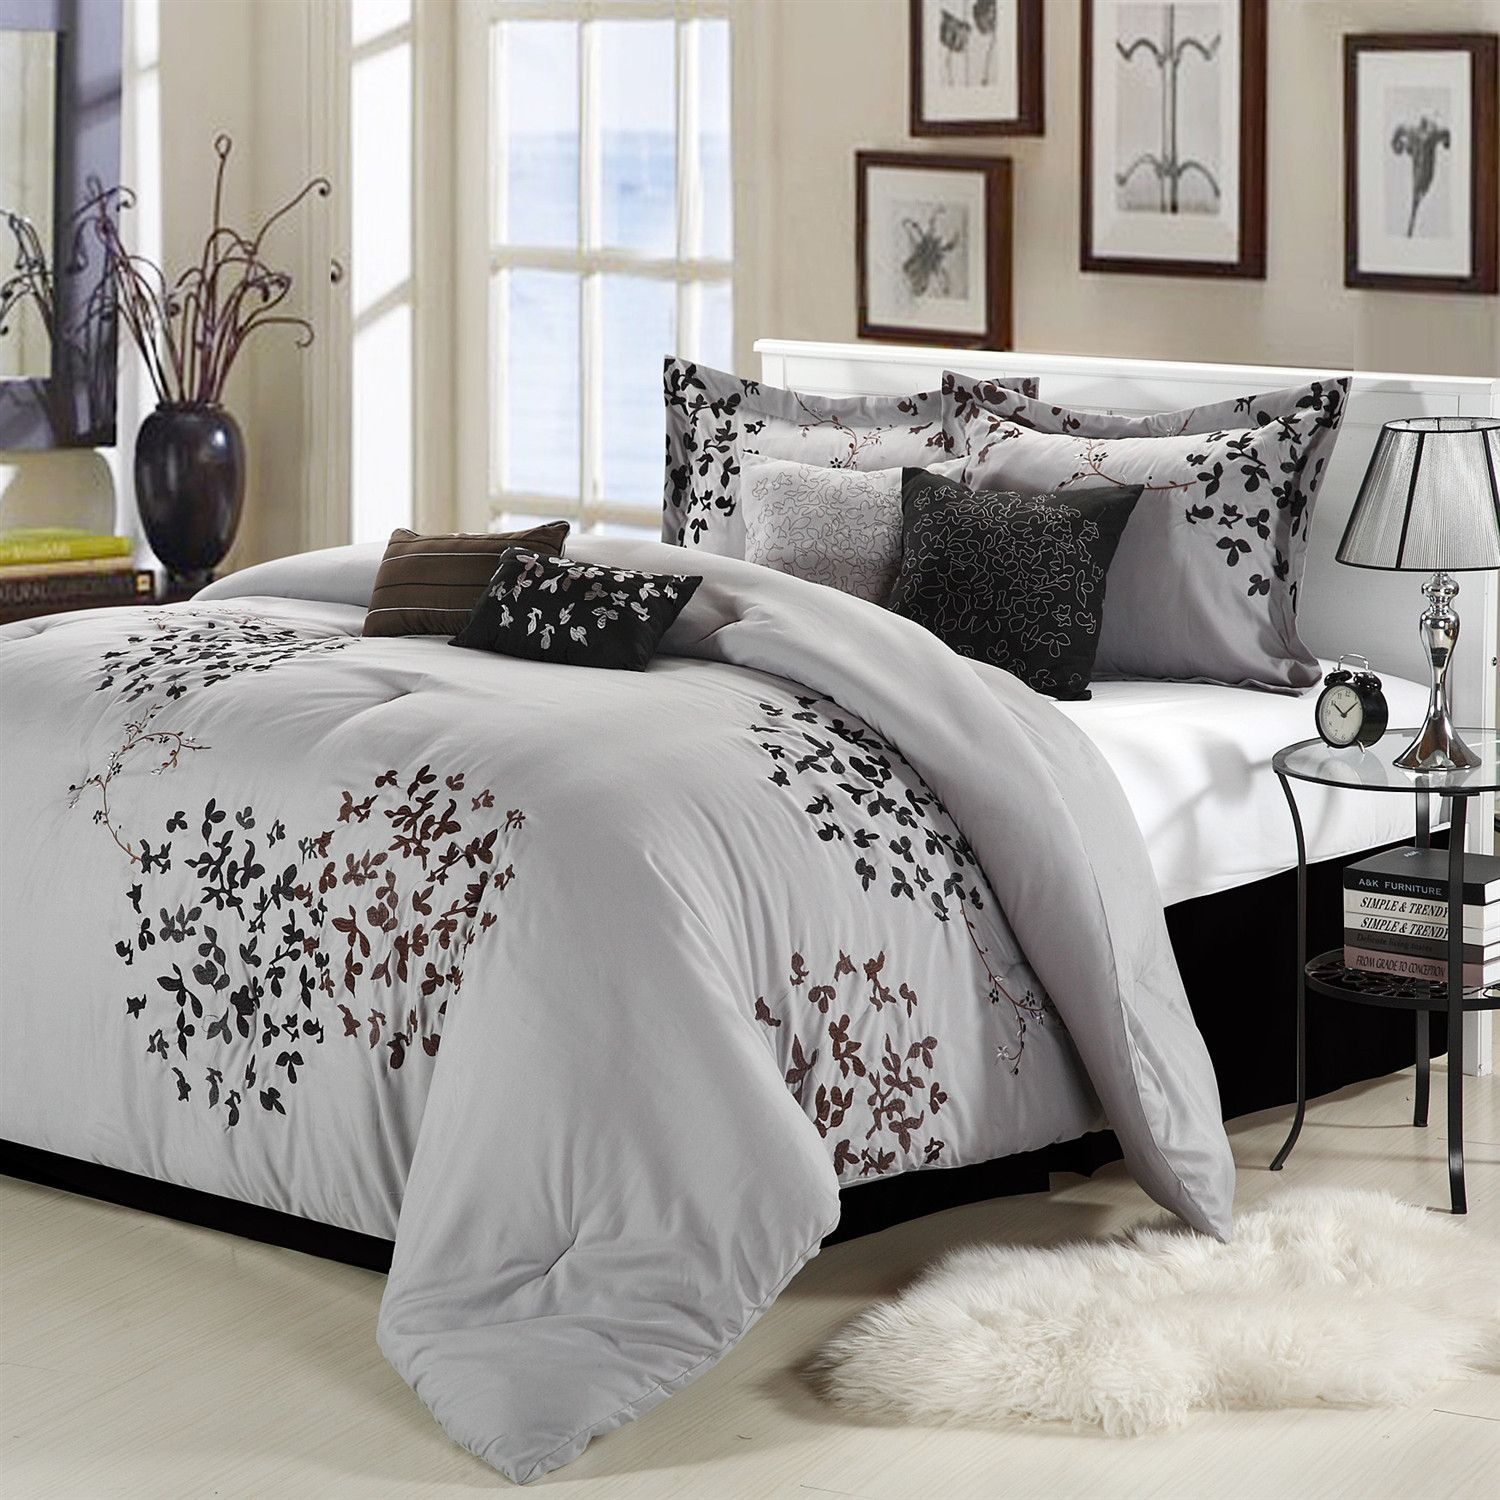 Bedding jardin collection bedding collections bed amp bath macy s - Queen Size 8 Piece Comforter Set In Silver Gray Black Brown Floral